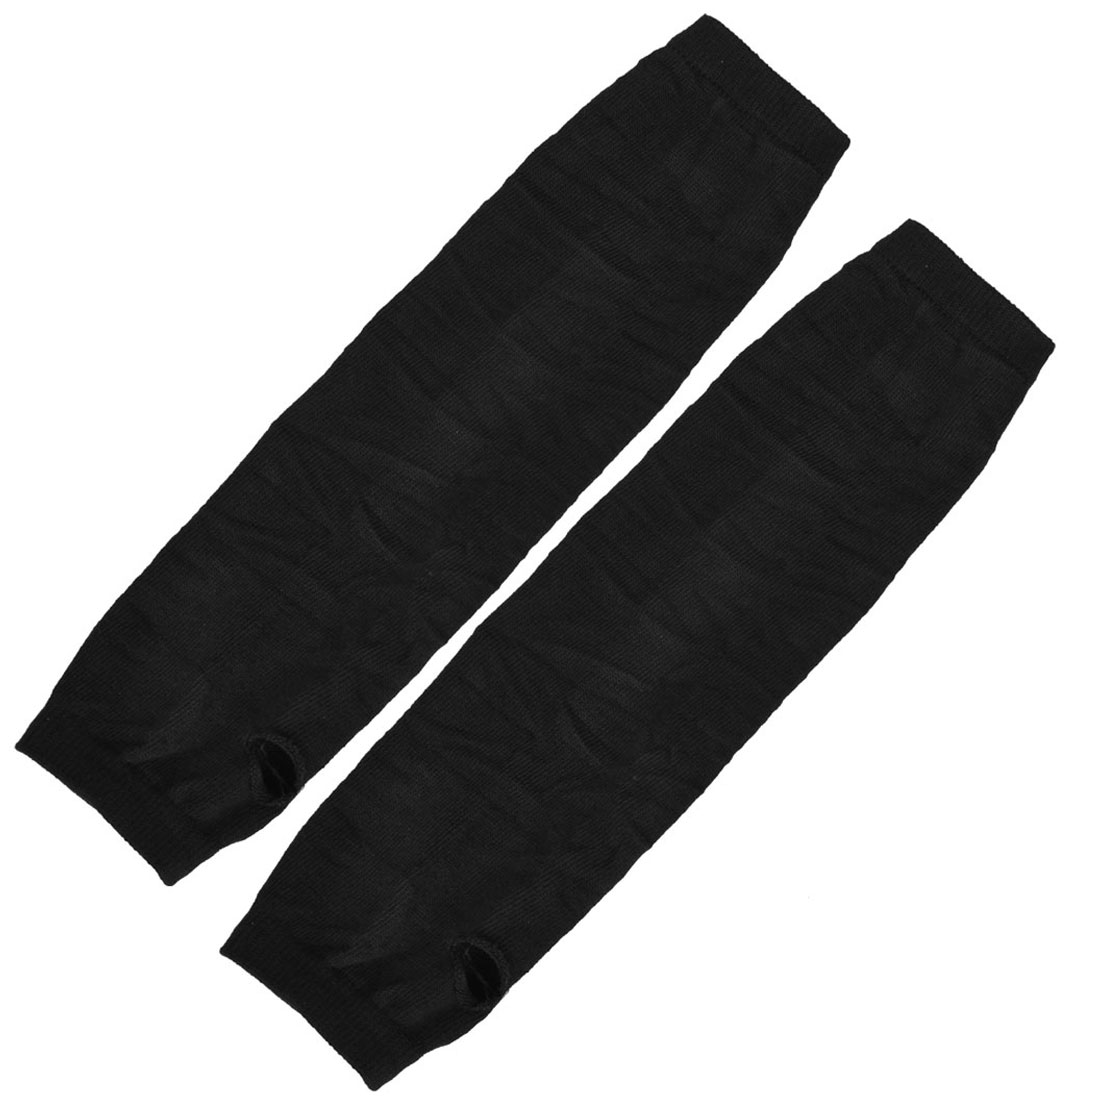 Pair Black Acrylic Fingerless Thumbhole Arm Warmers Long Gloves for Lady